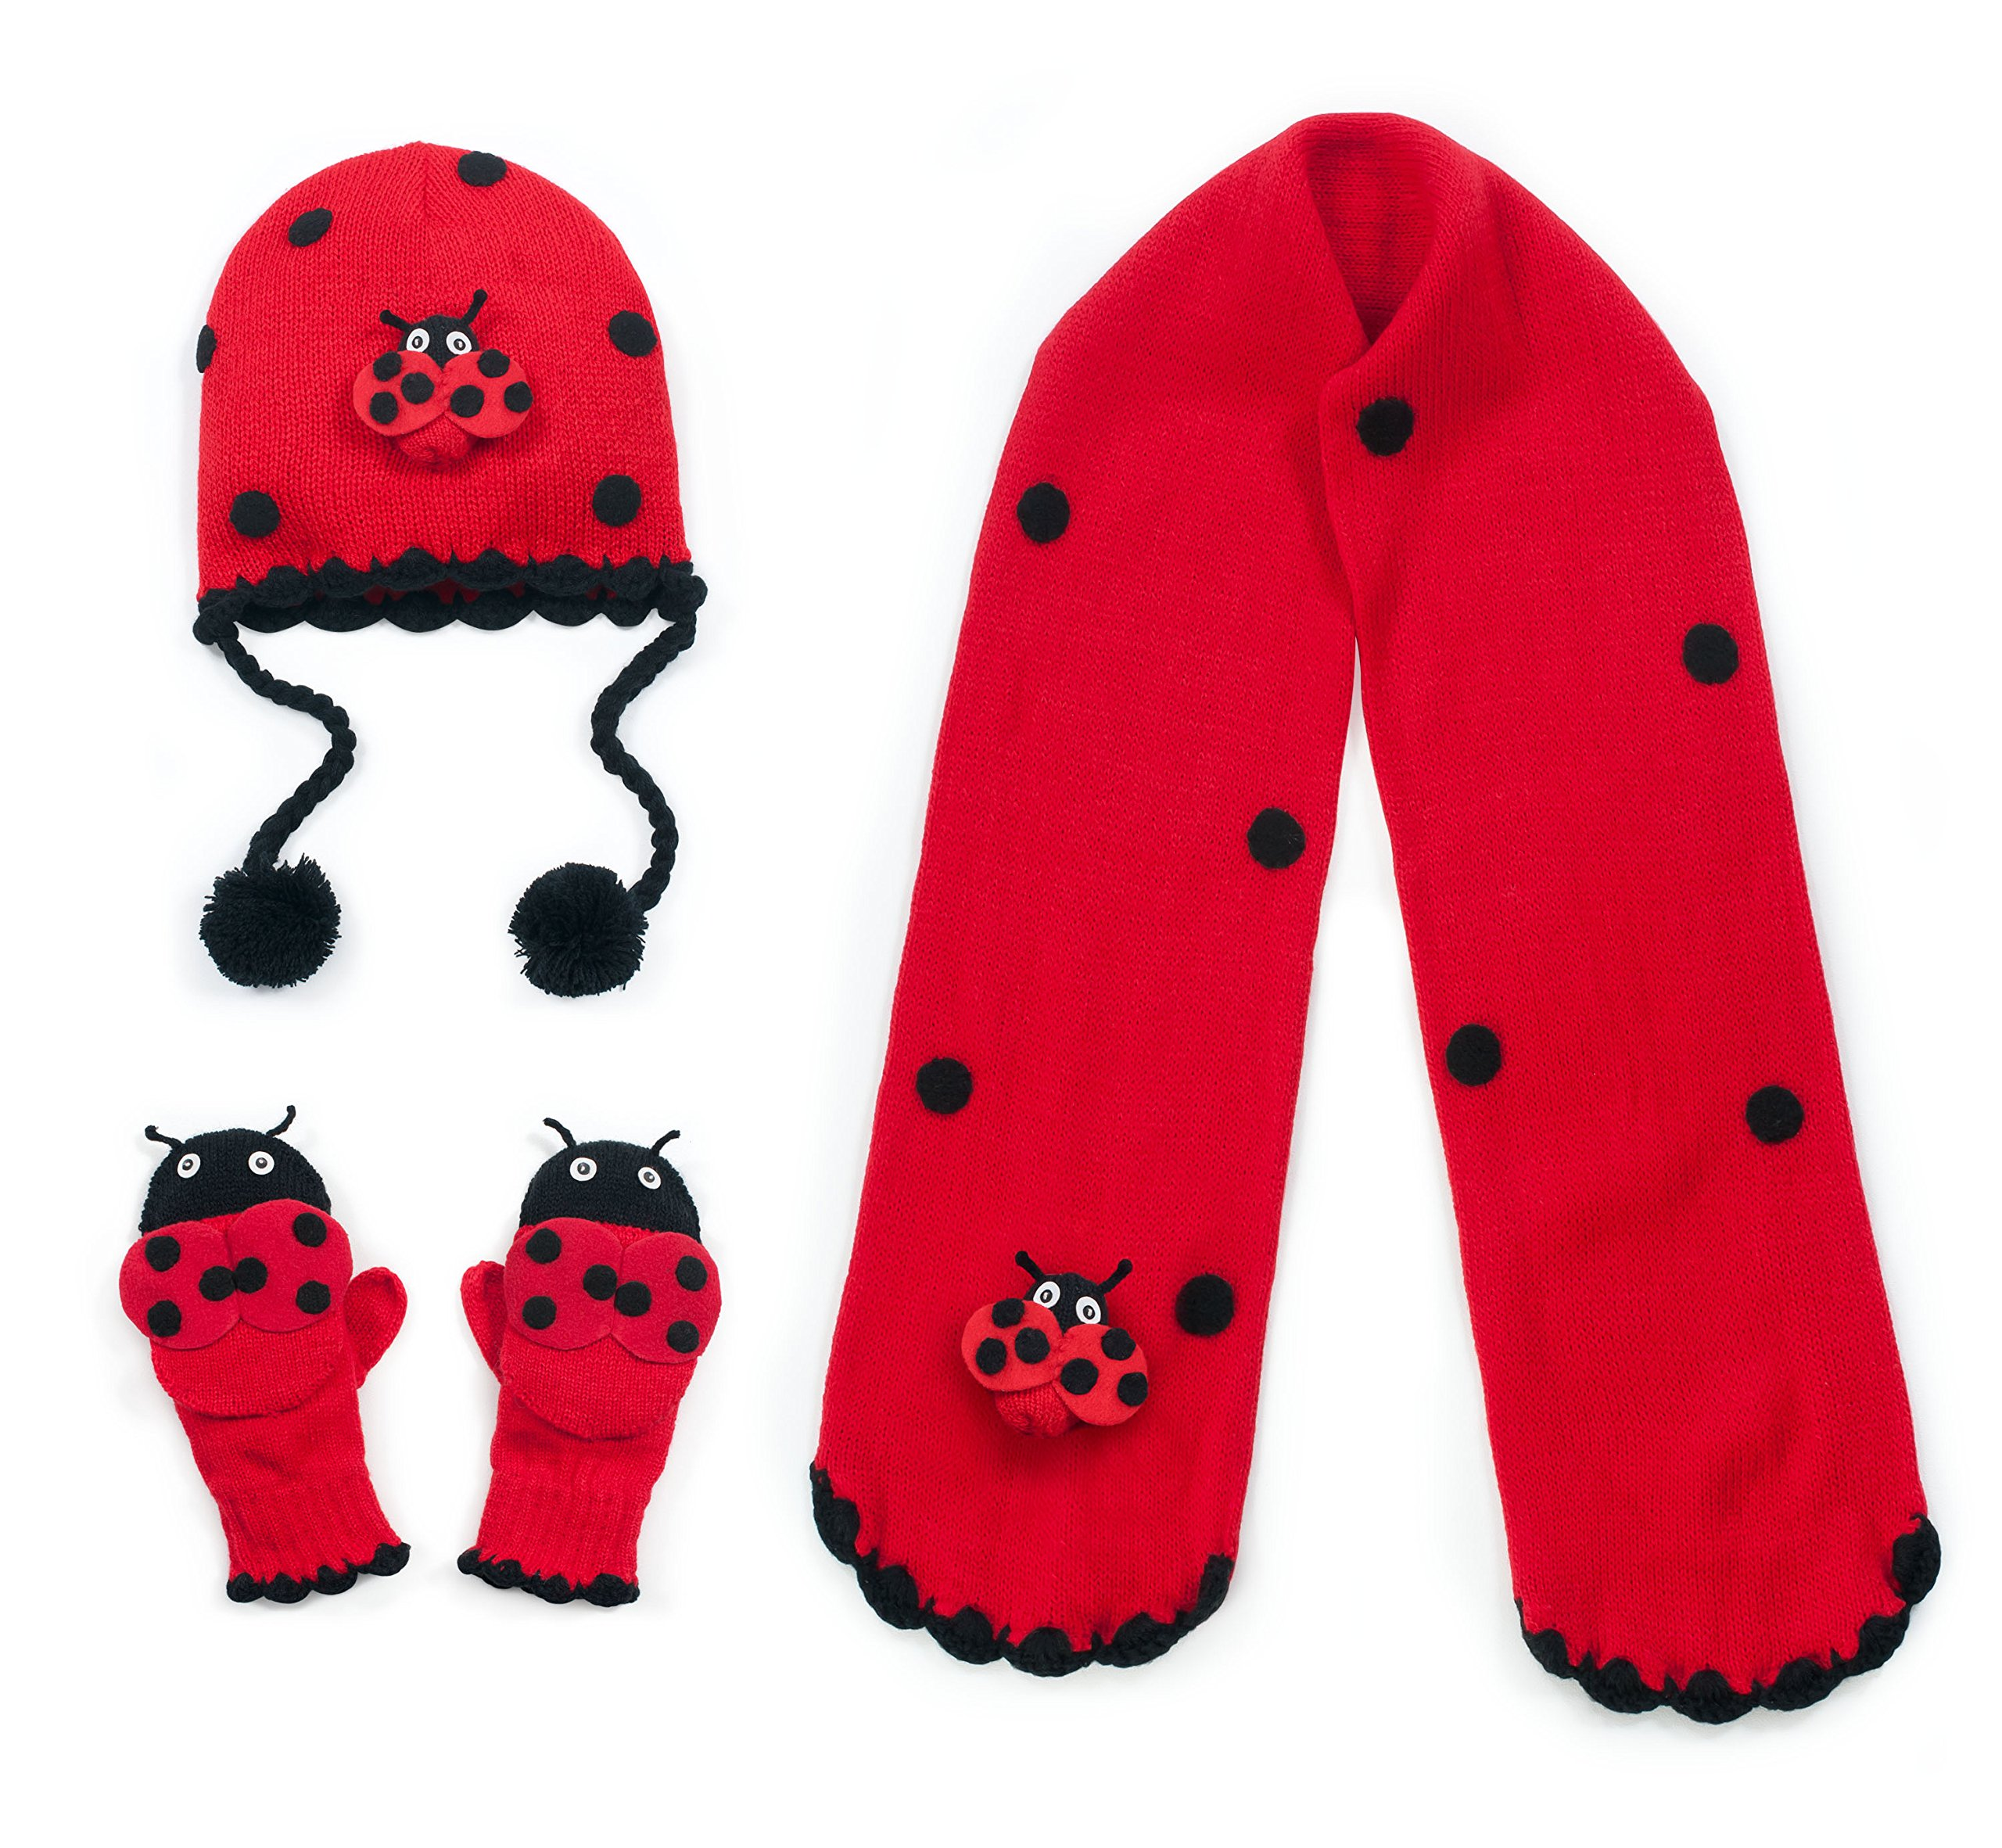 Kidorable Red Ladybug Soft Hat/Scarf/Mitten Set for Girls With Fun Wings and Antennae, Ages 3-5